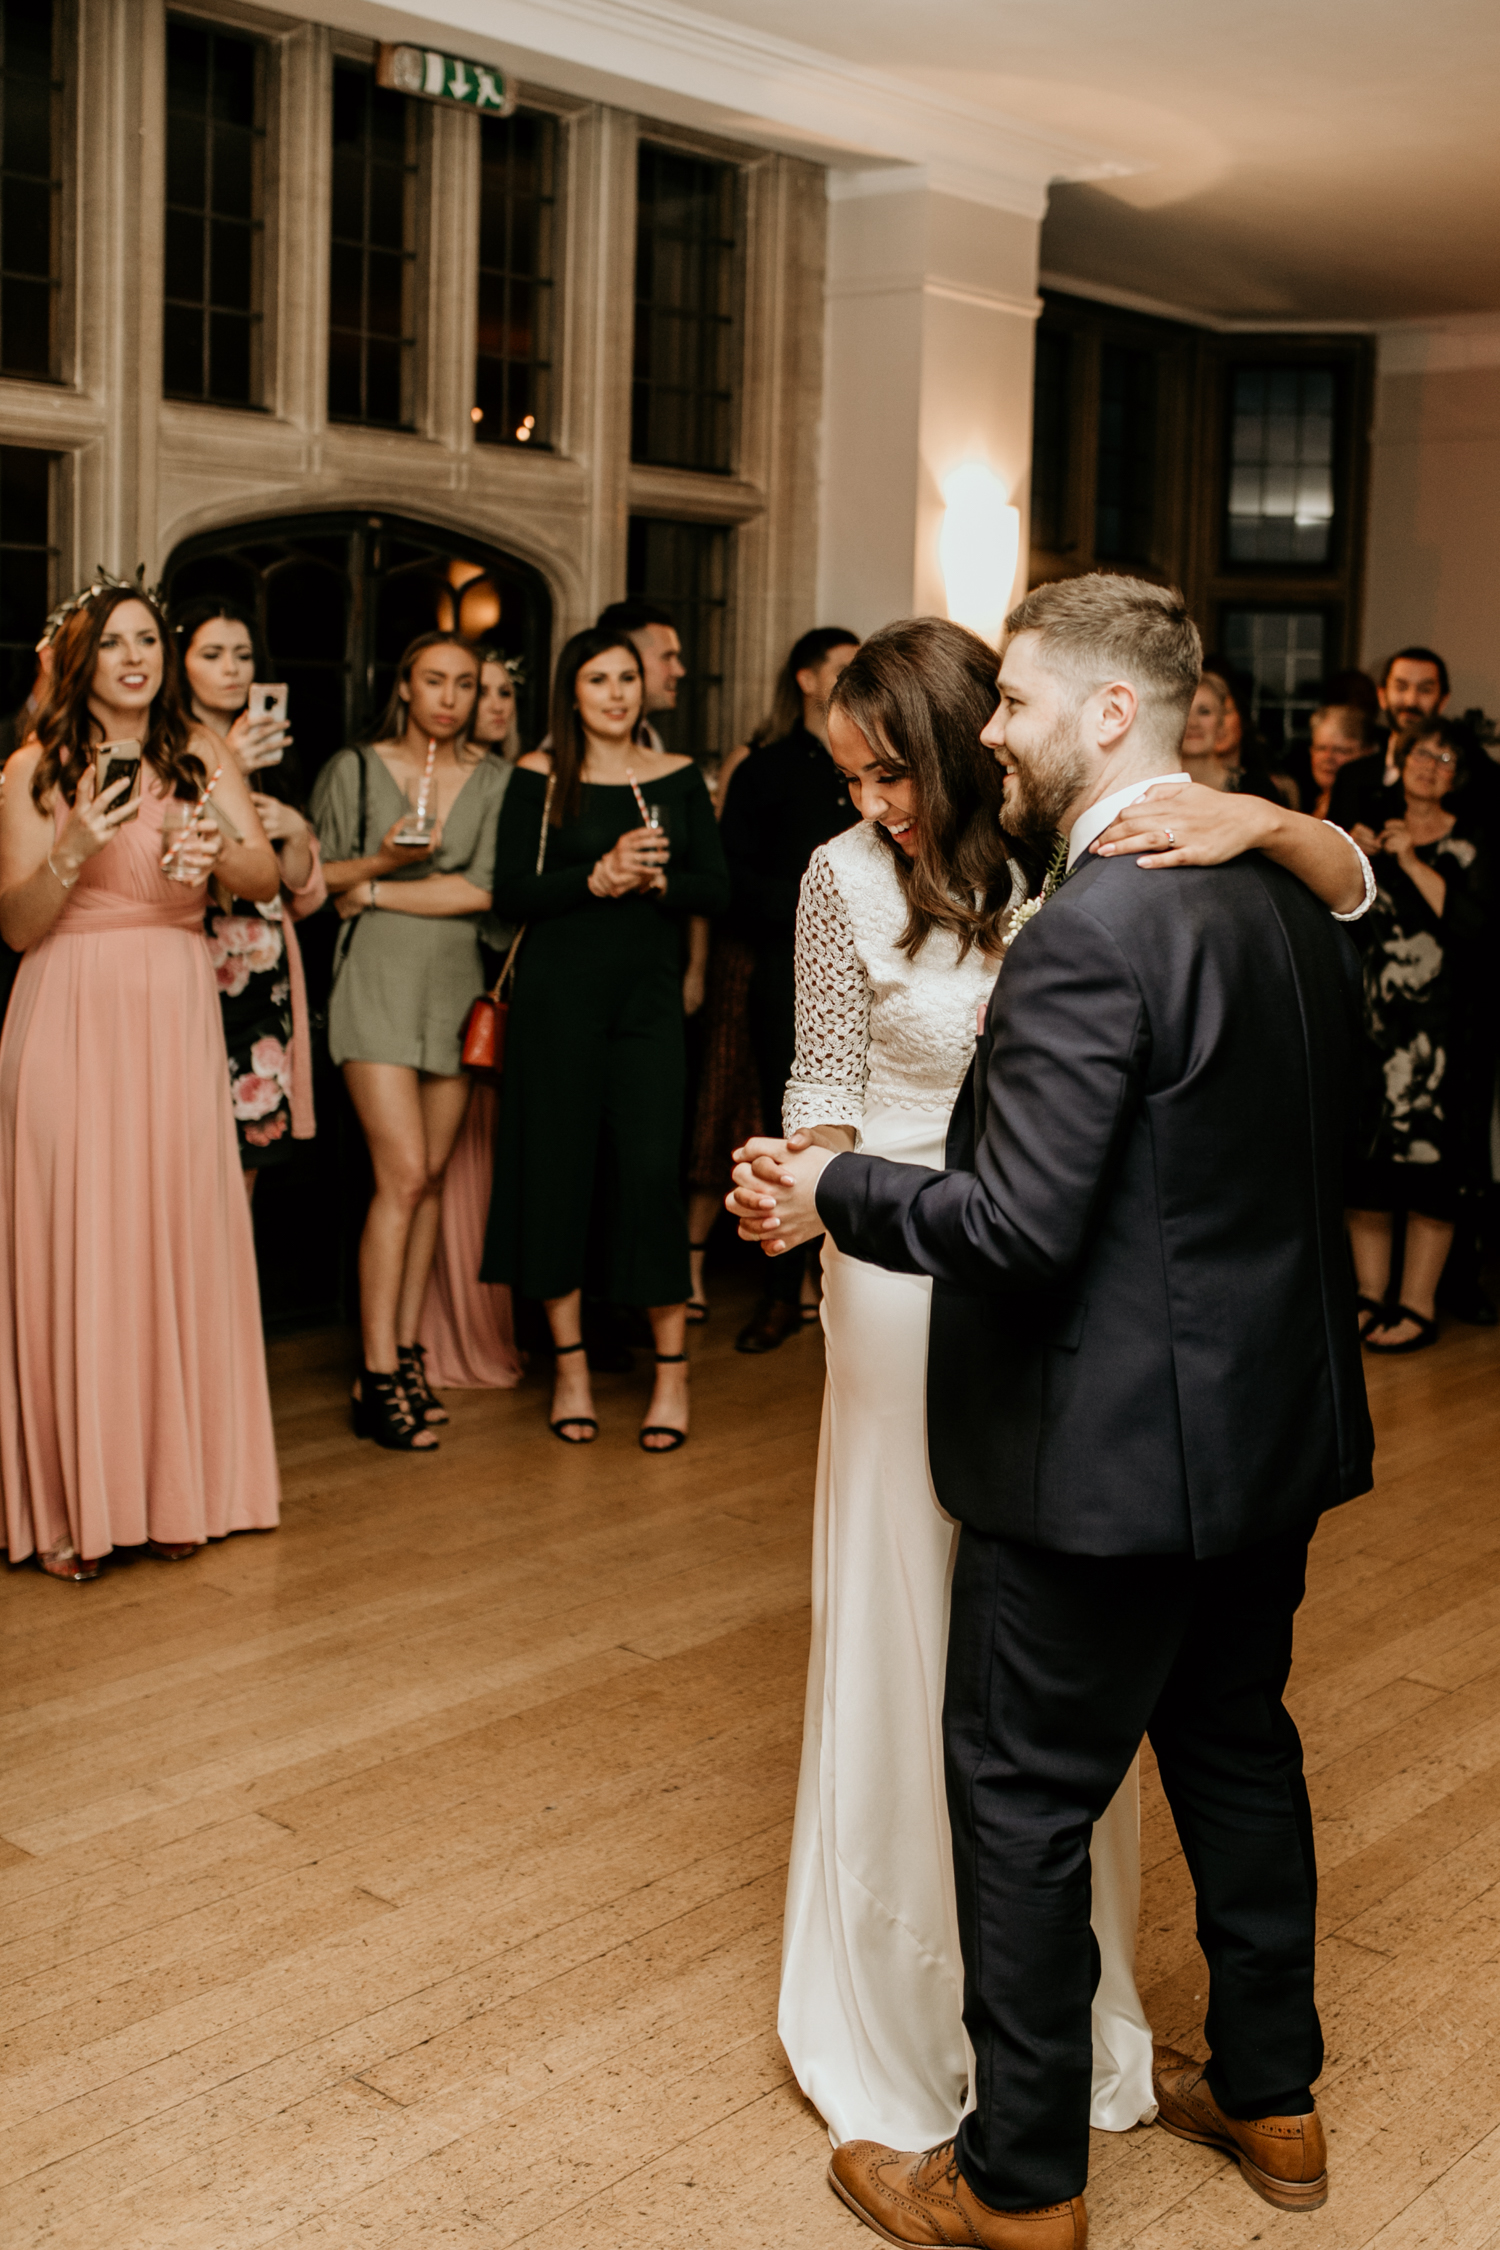 bride and groom first dance at Coombe Lodge Blagdon wedding venue